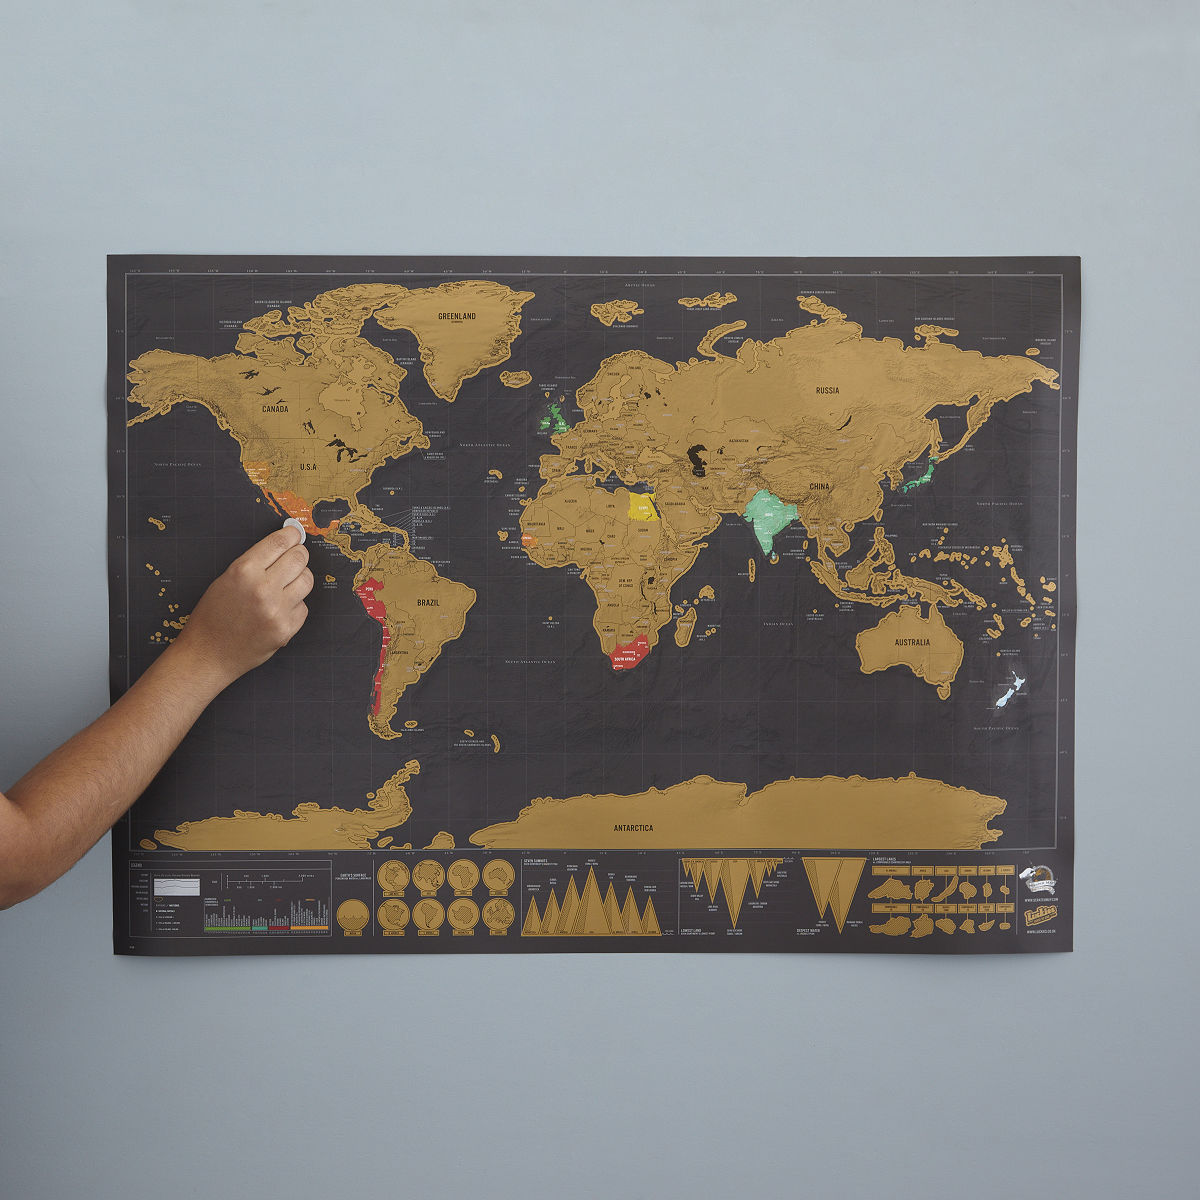 147 Gifts For Travelers Travel Gifts – Maps For Travelers